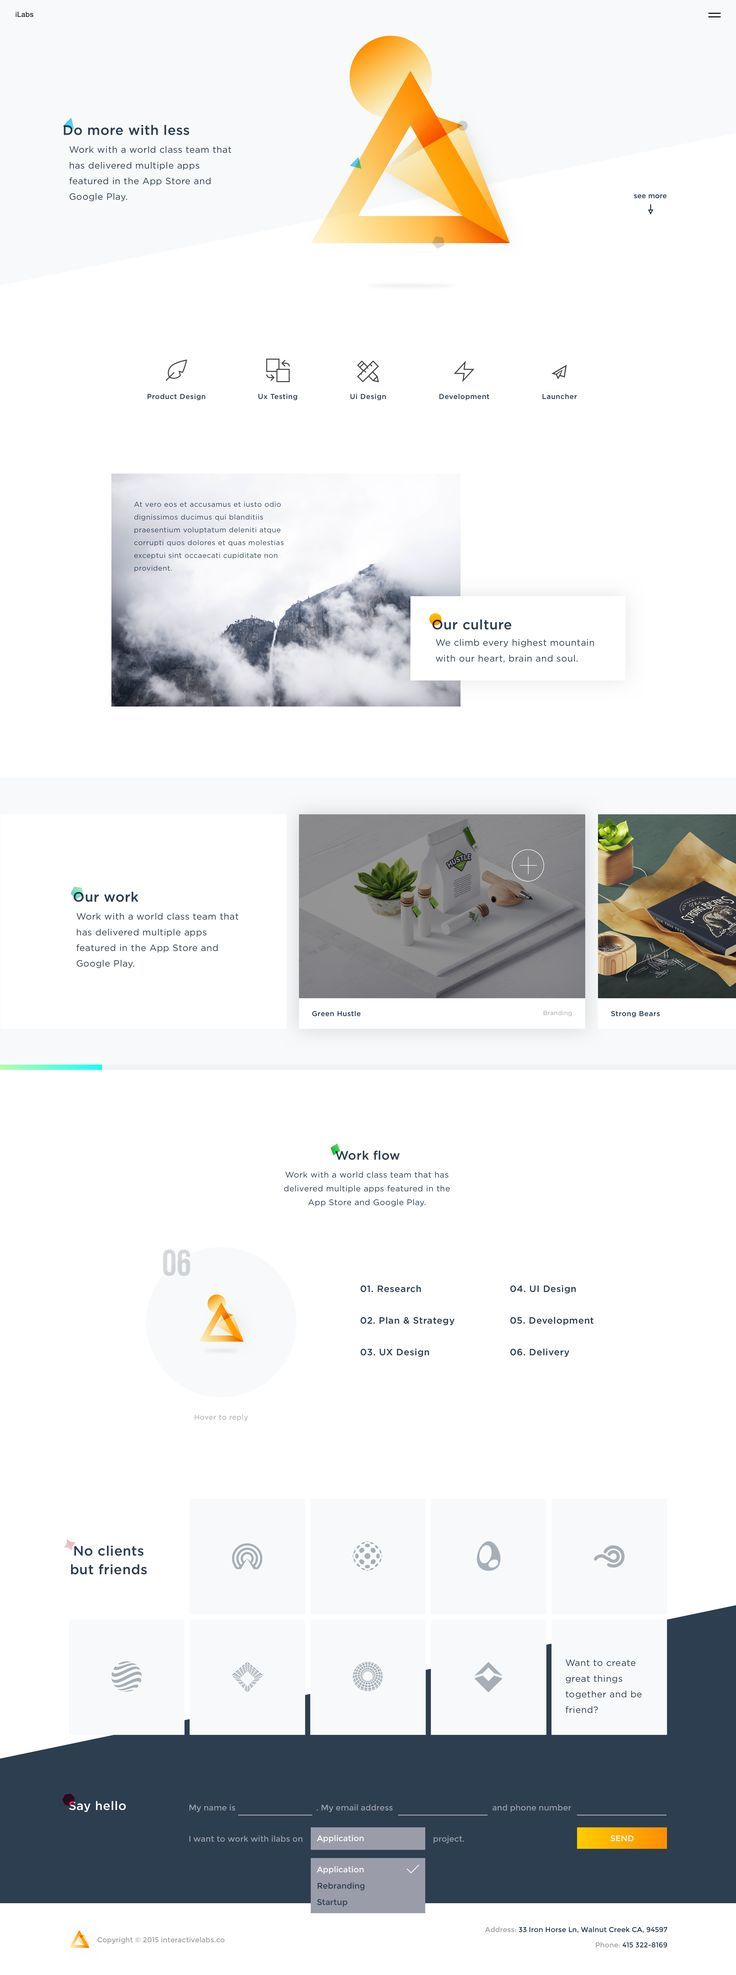 iLabs Web Concept 1 by Hoang Nguyen in iLabs on Feb 22, 2016